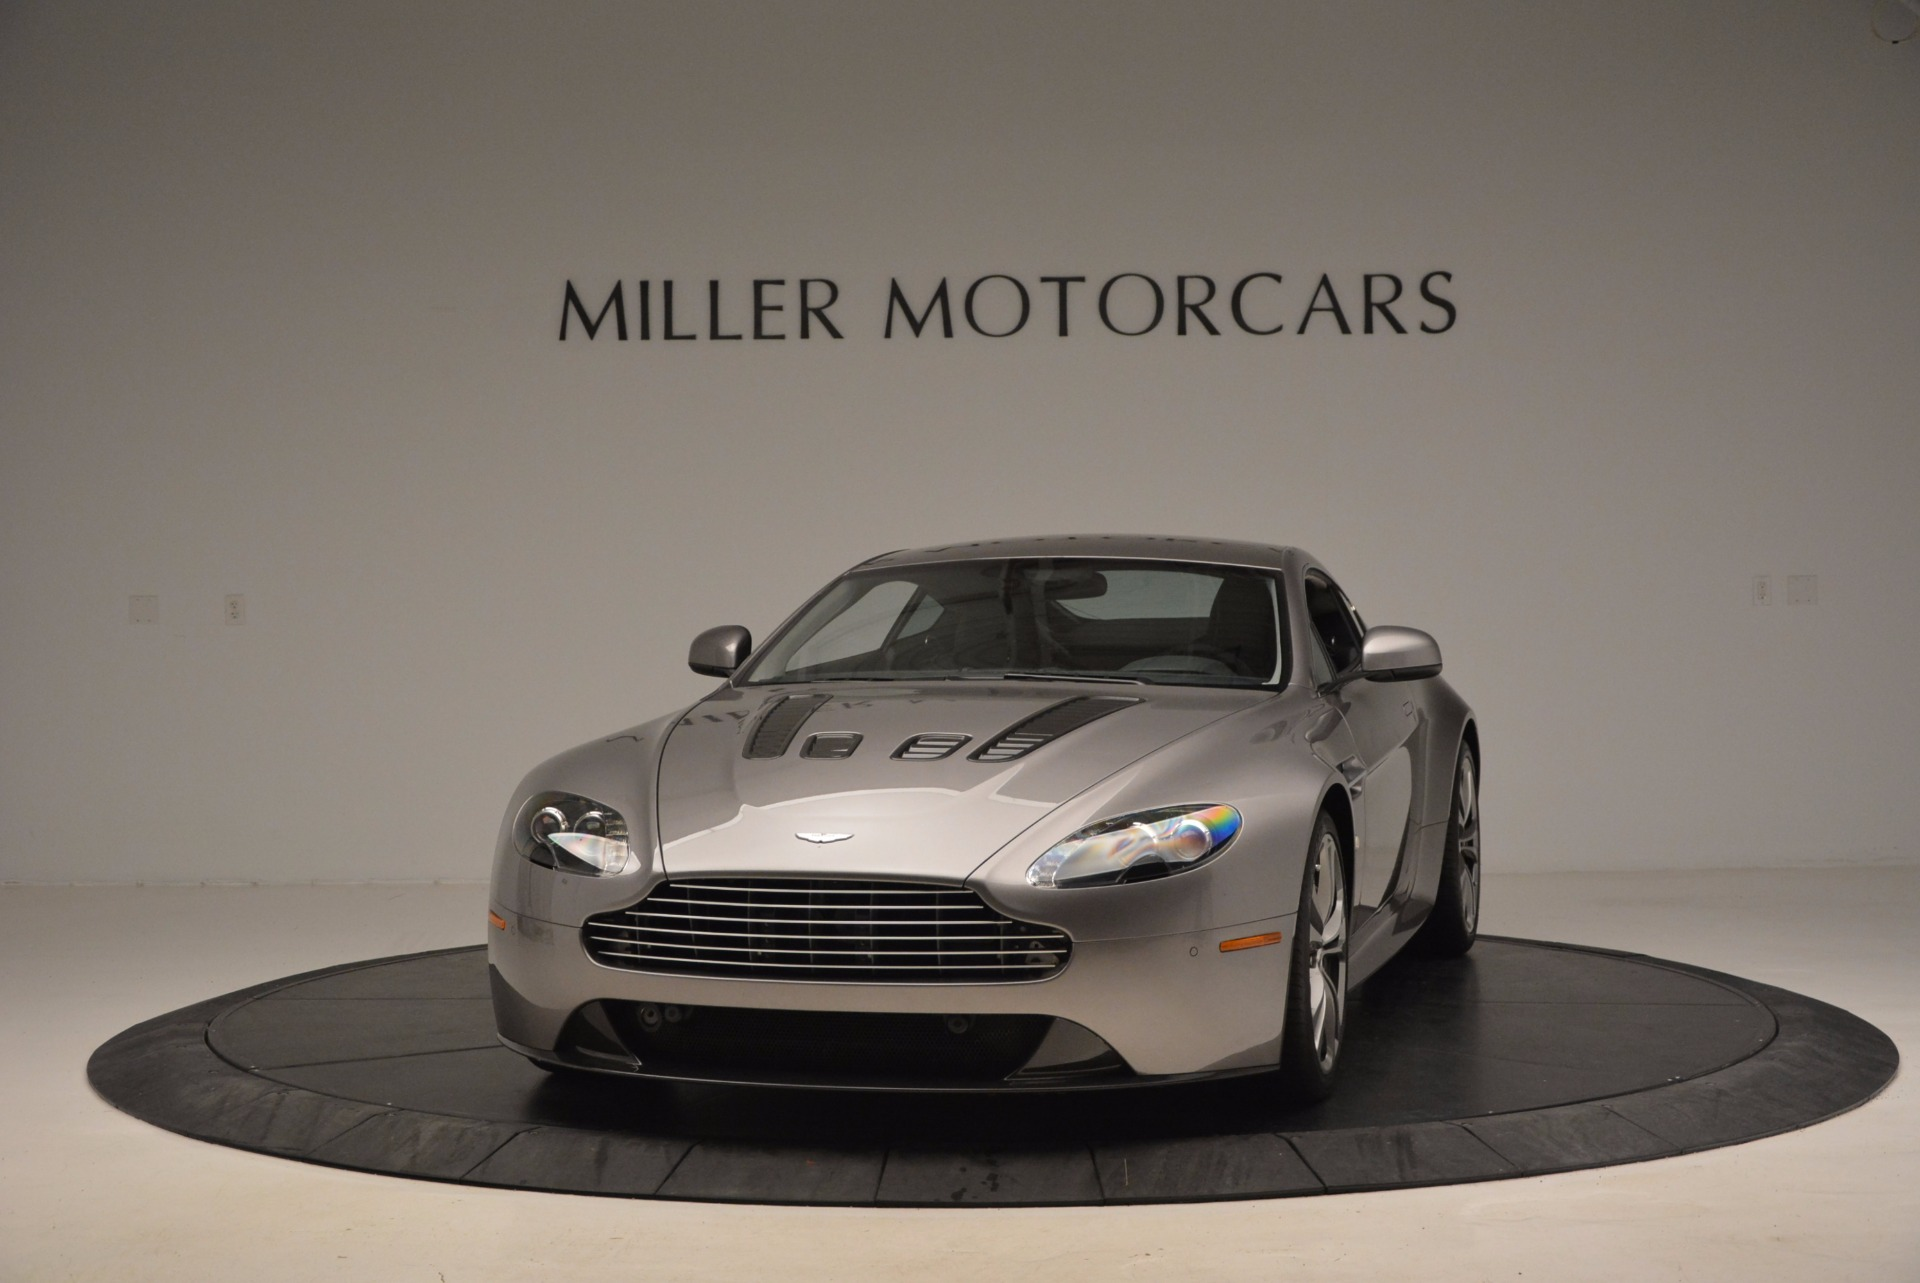 Used 2012 Aston Martin V12 Vantage for sale Sold at Bentley Greenwich in Greenwich CT 06830 1